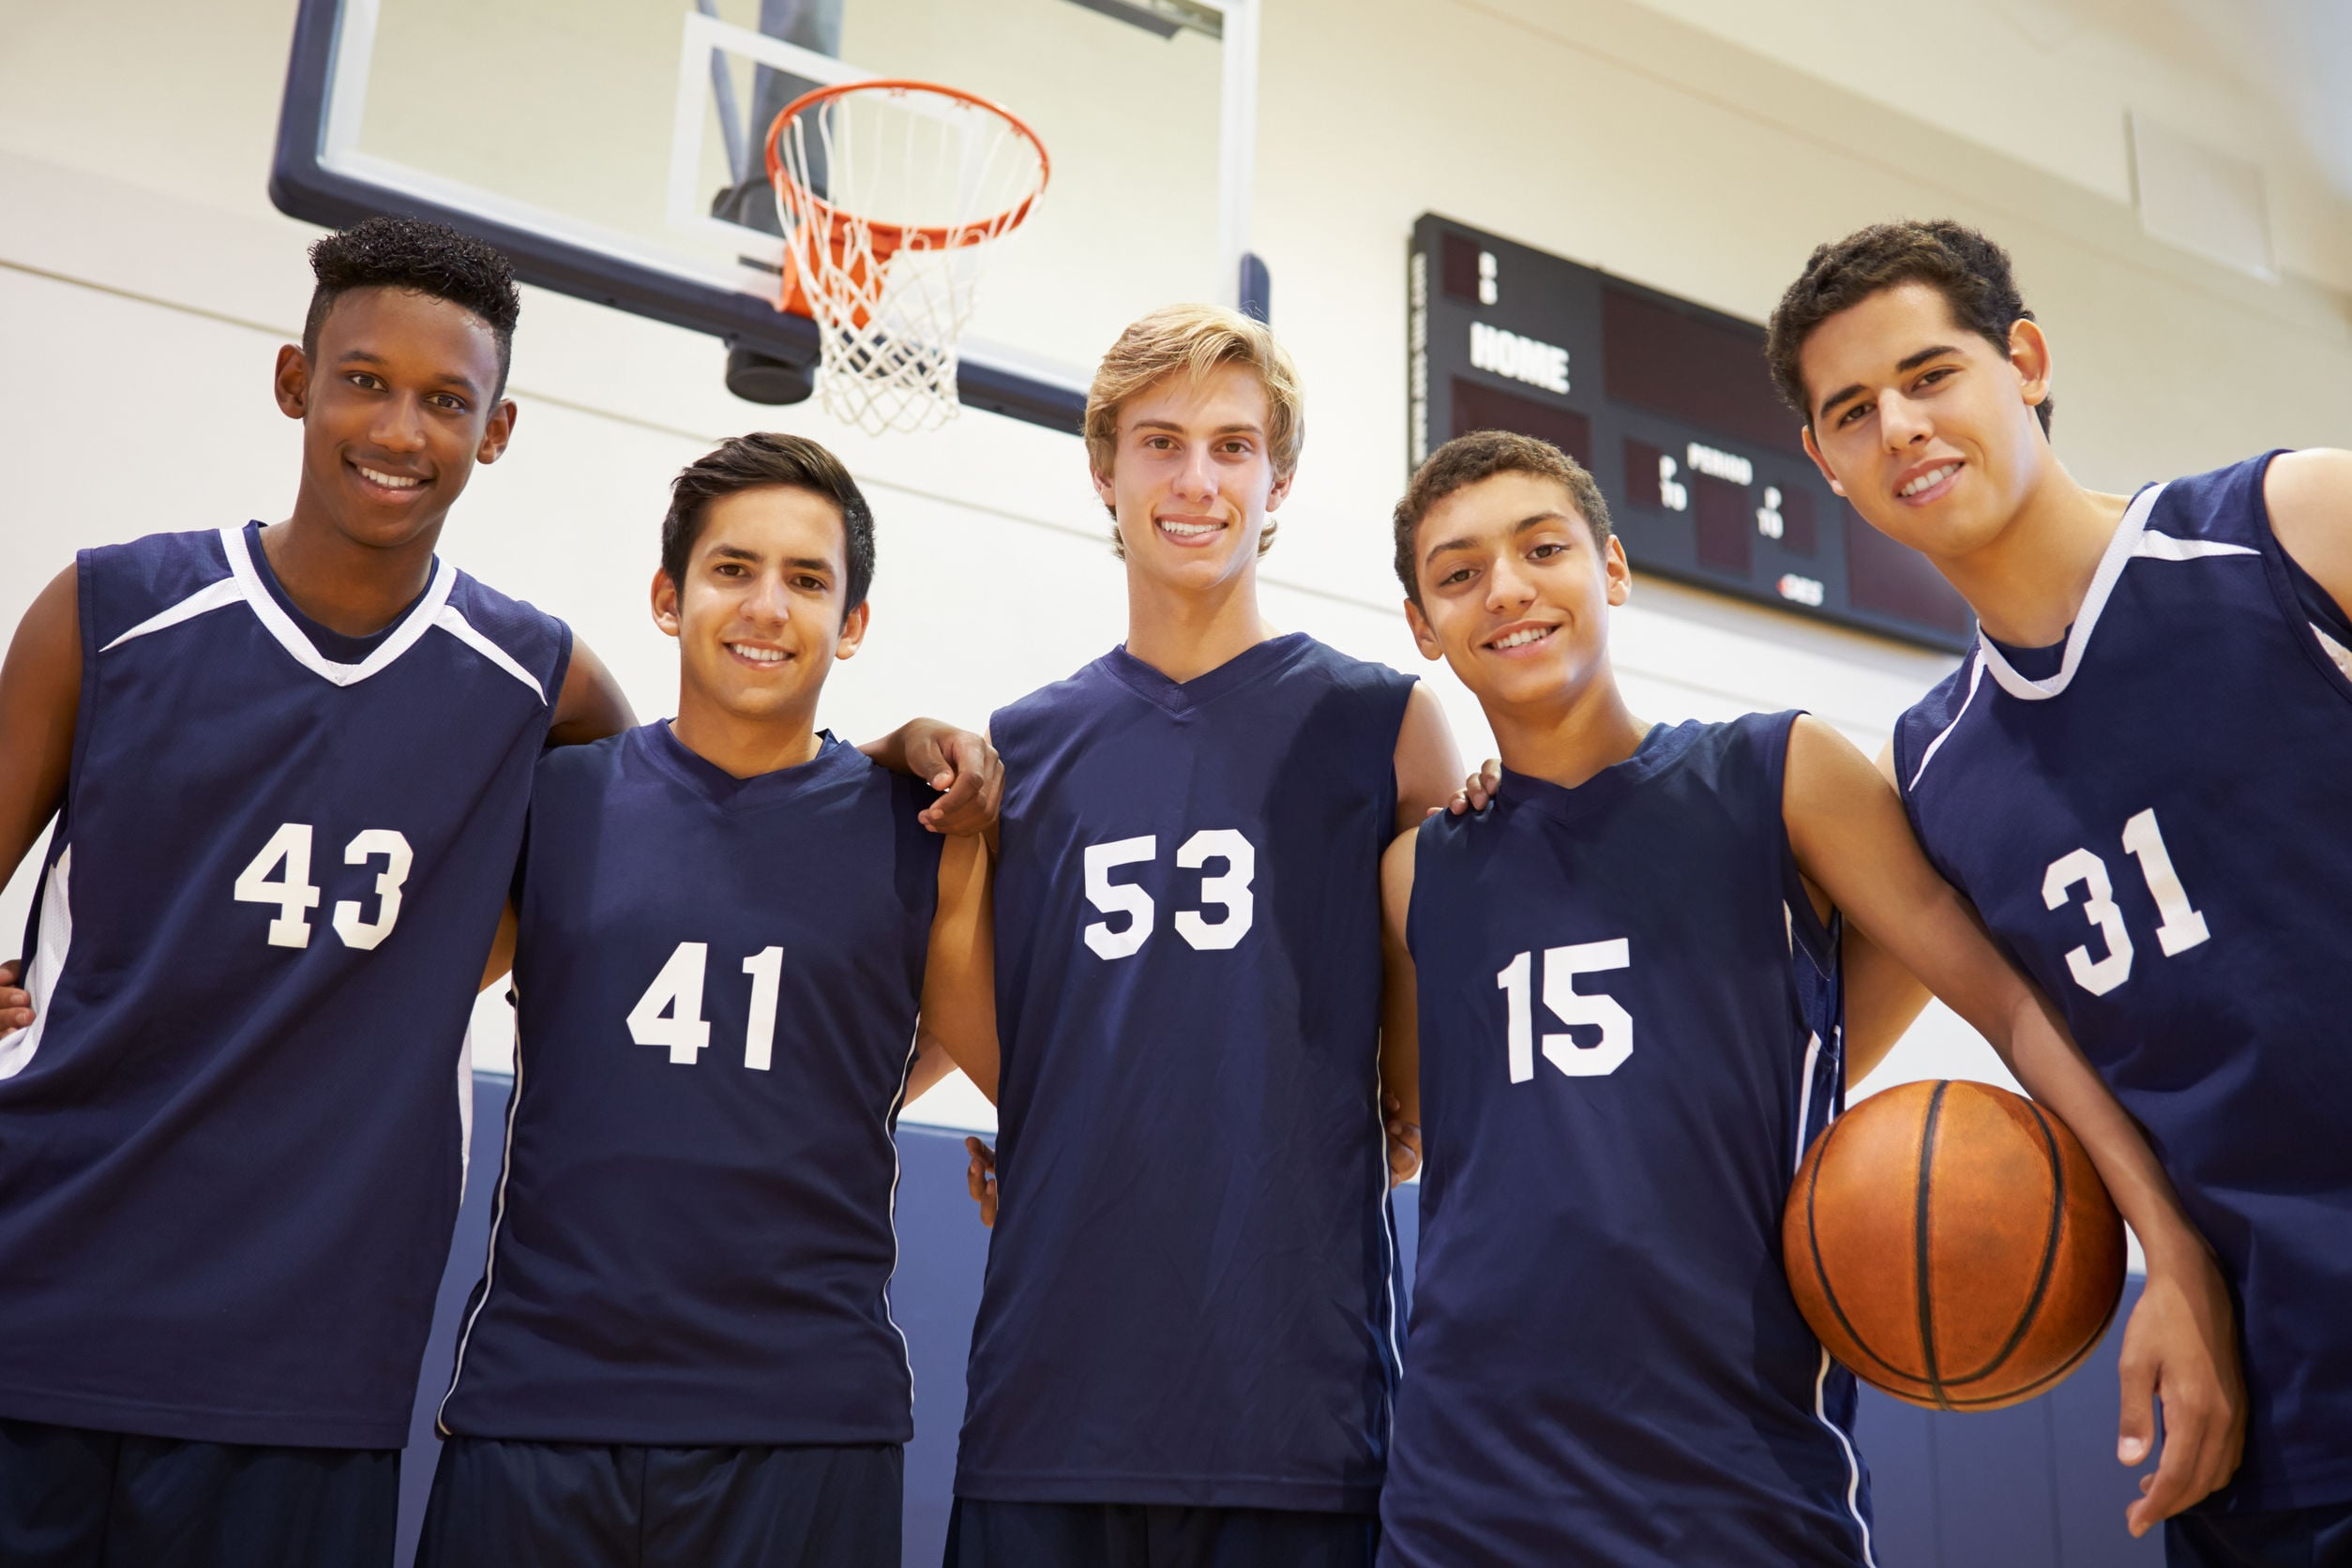 HS Basketball Dangers Florida Parents Should Watch Out For